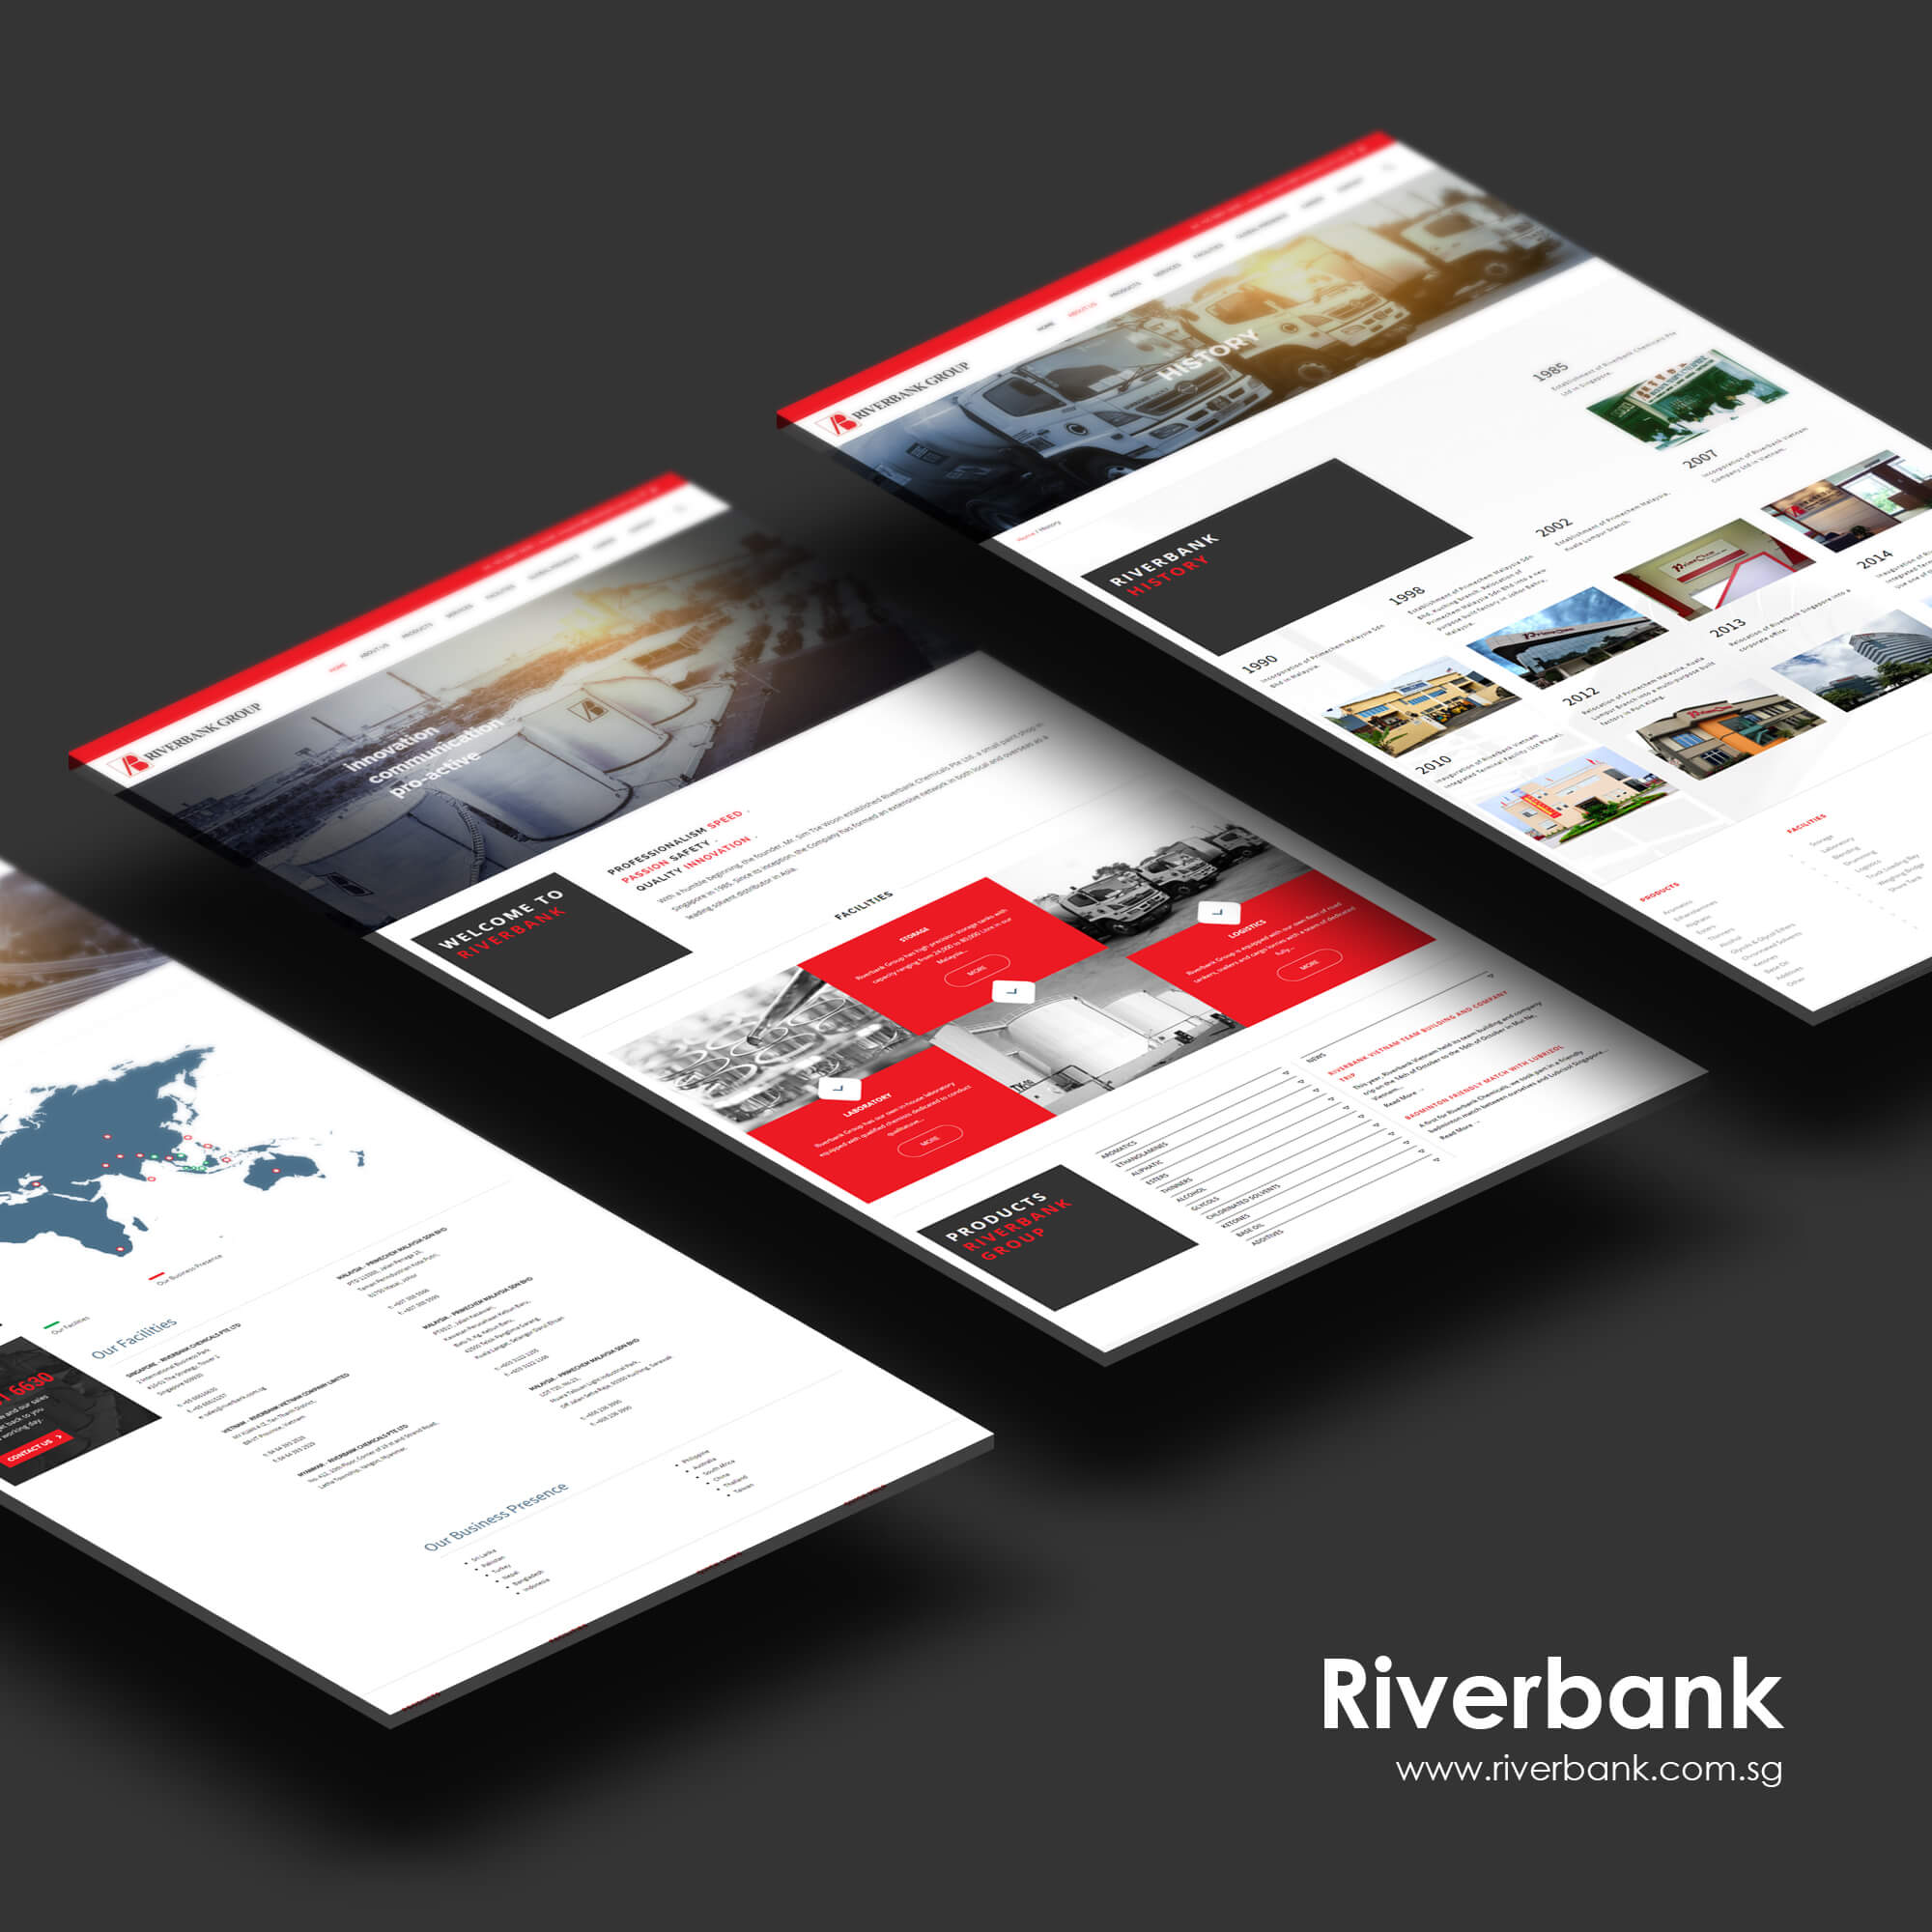 sbwd - riverbank web concept